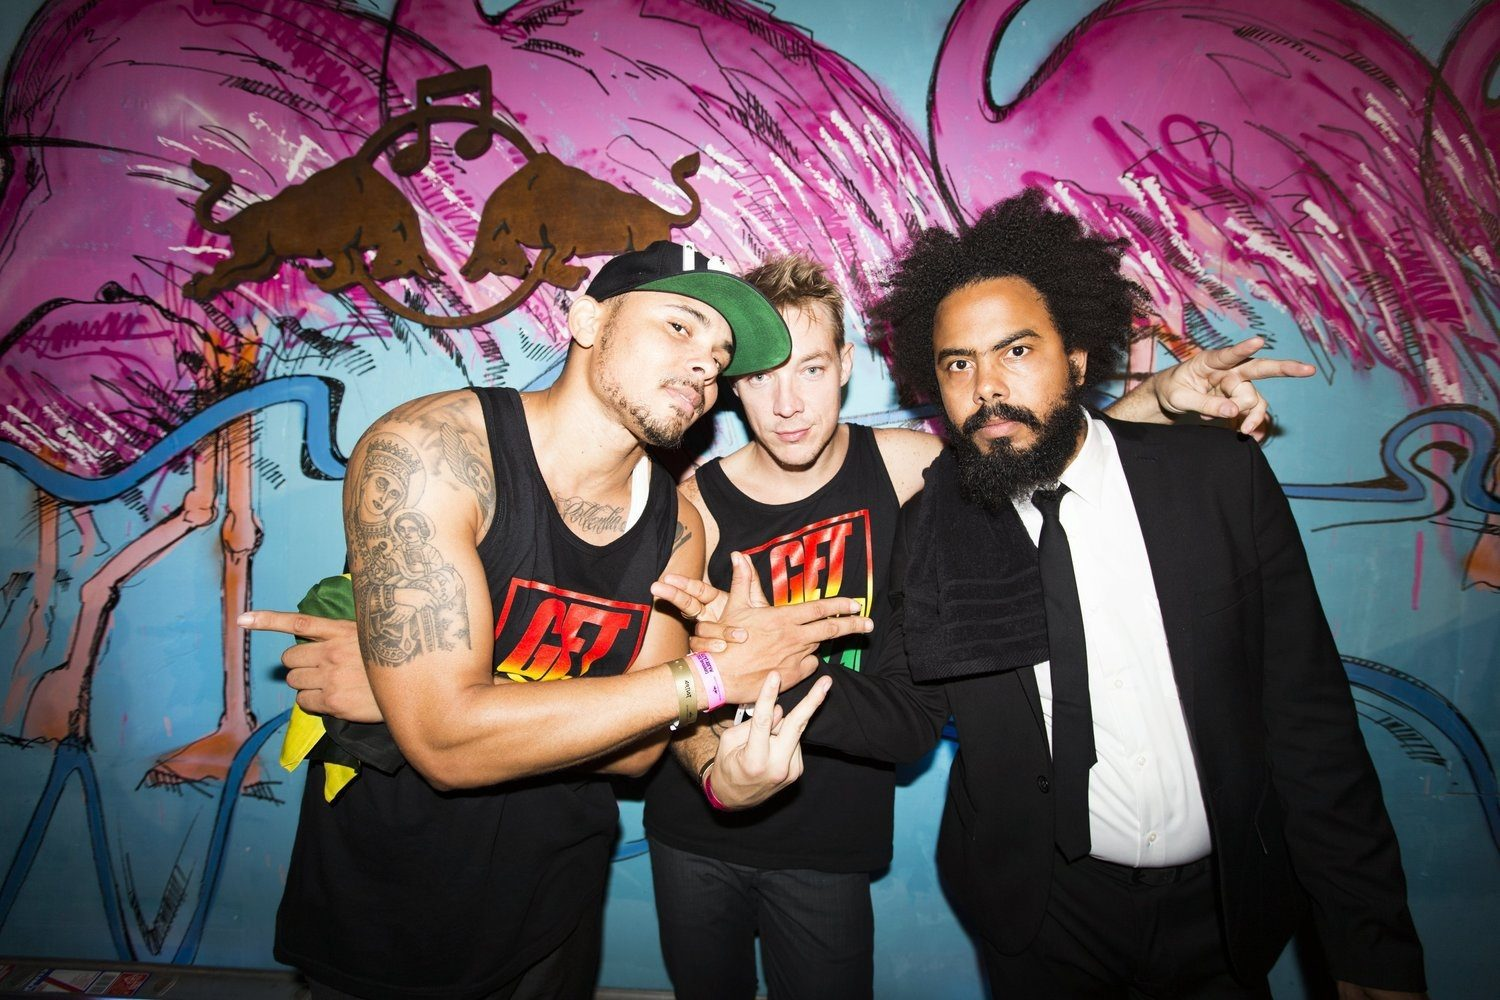 Major Lazer and MØ's 'Lean On' becomes Spotify's most-streamed song of all time